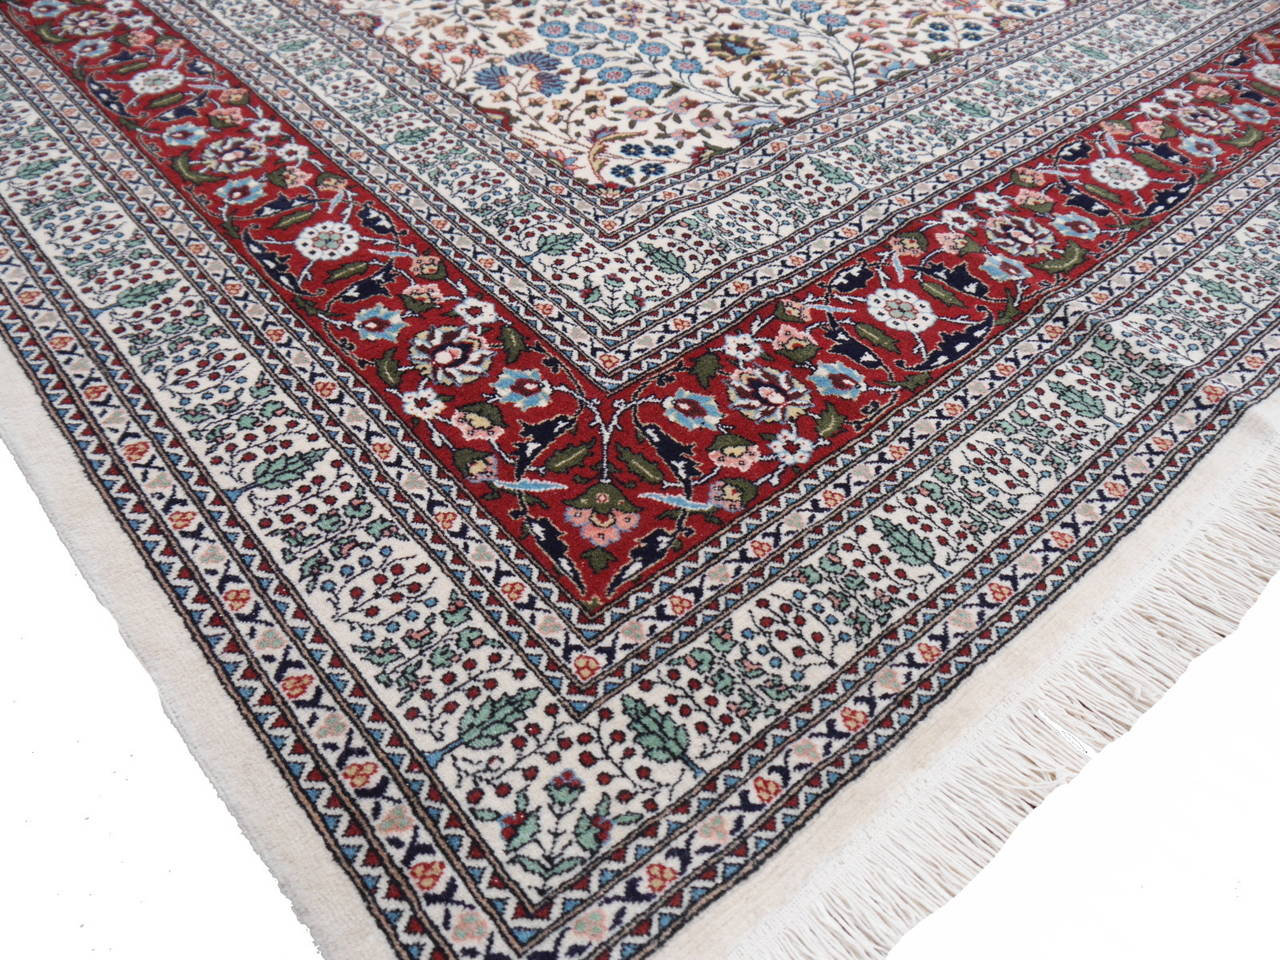 Oversize Turkish Hereke carpet with floral all-over design. Fine wool pile and high knot density result a fine and detailed look.